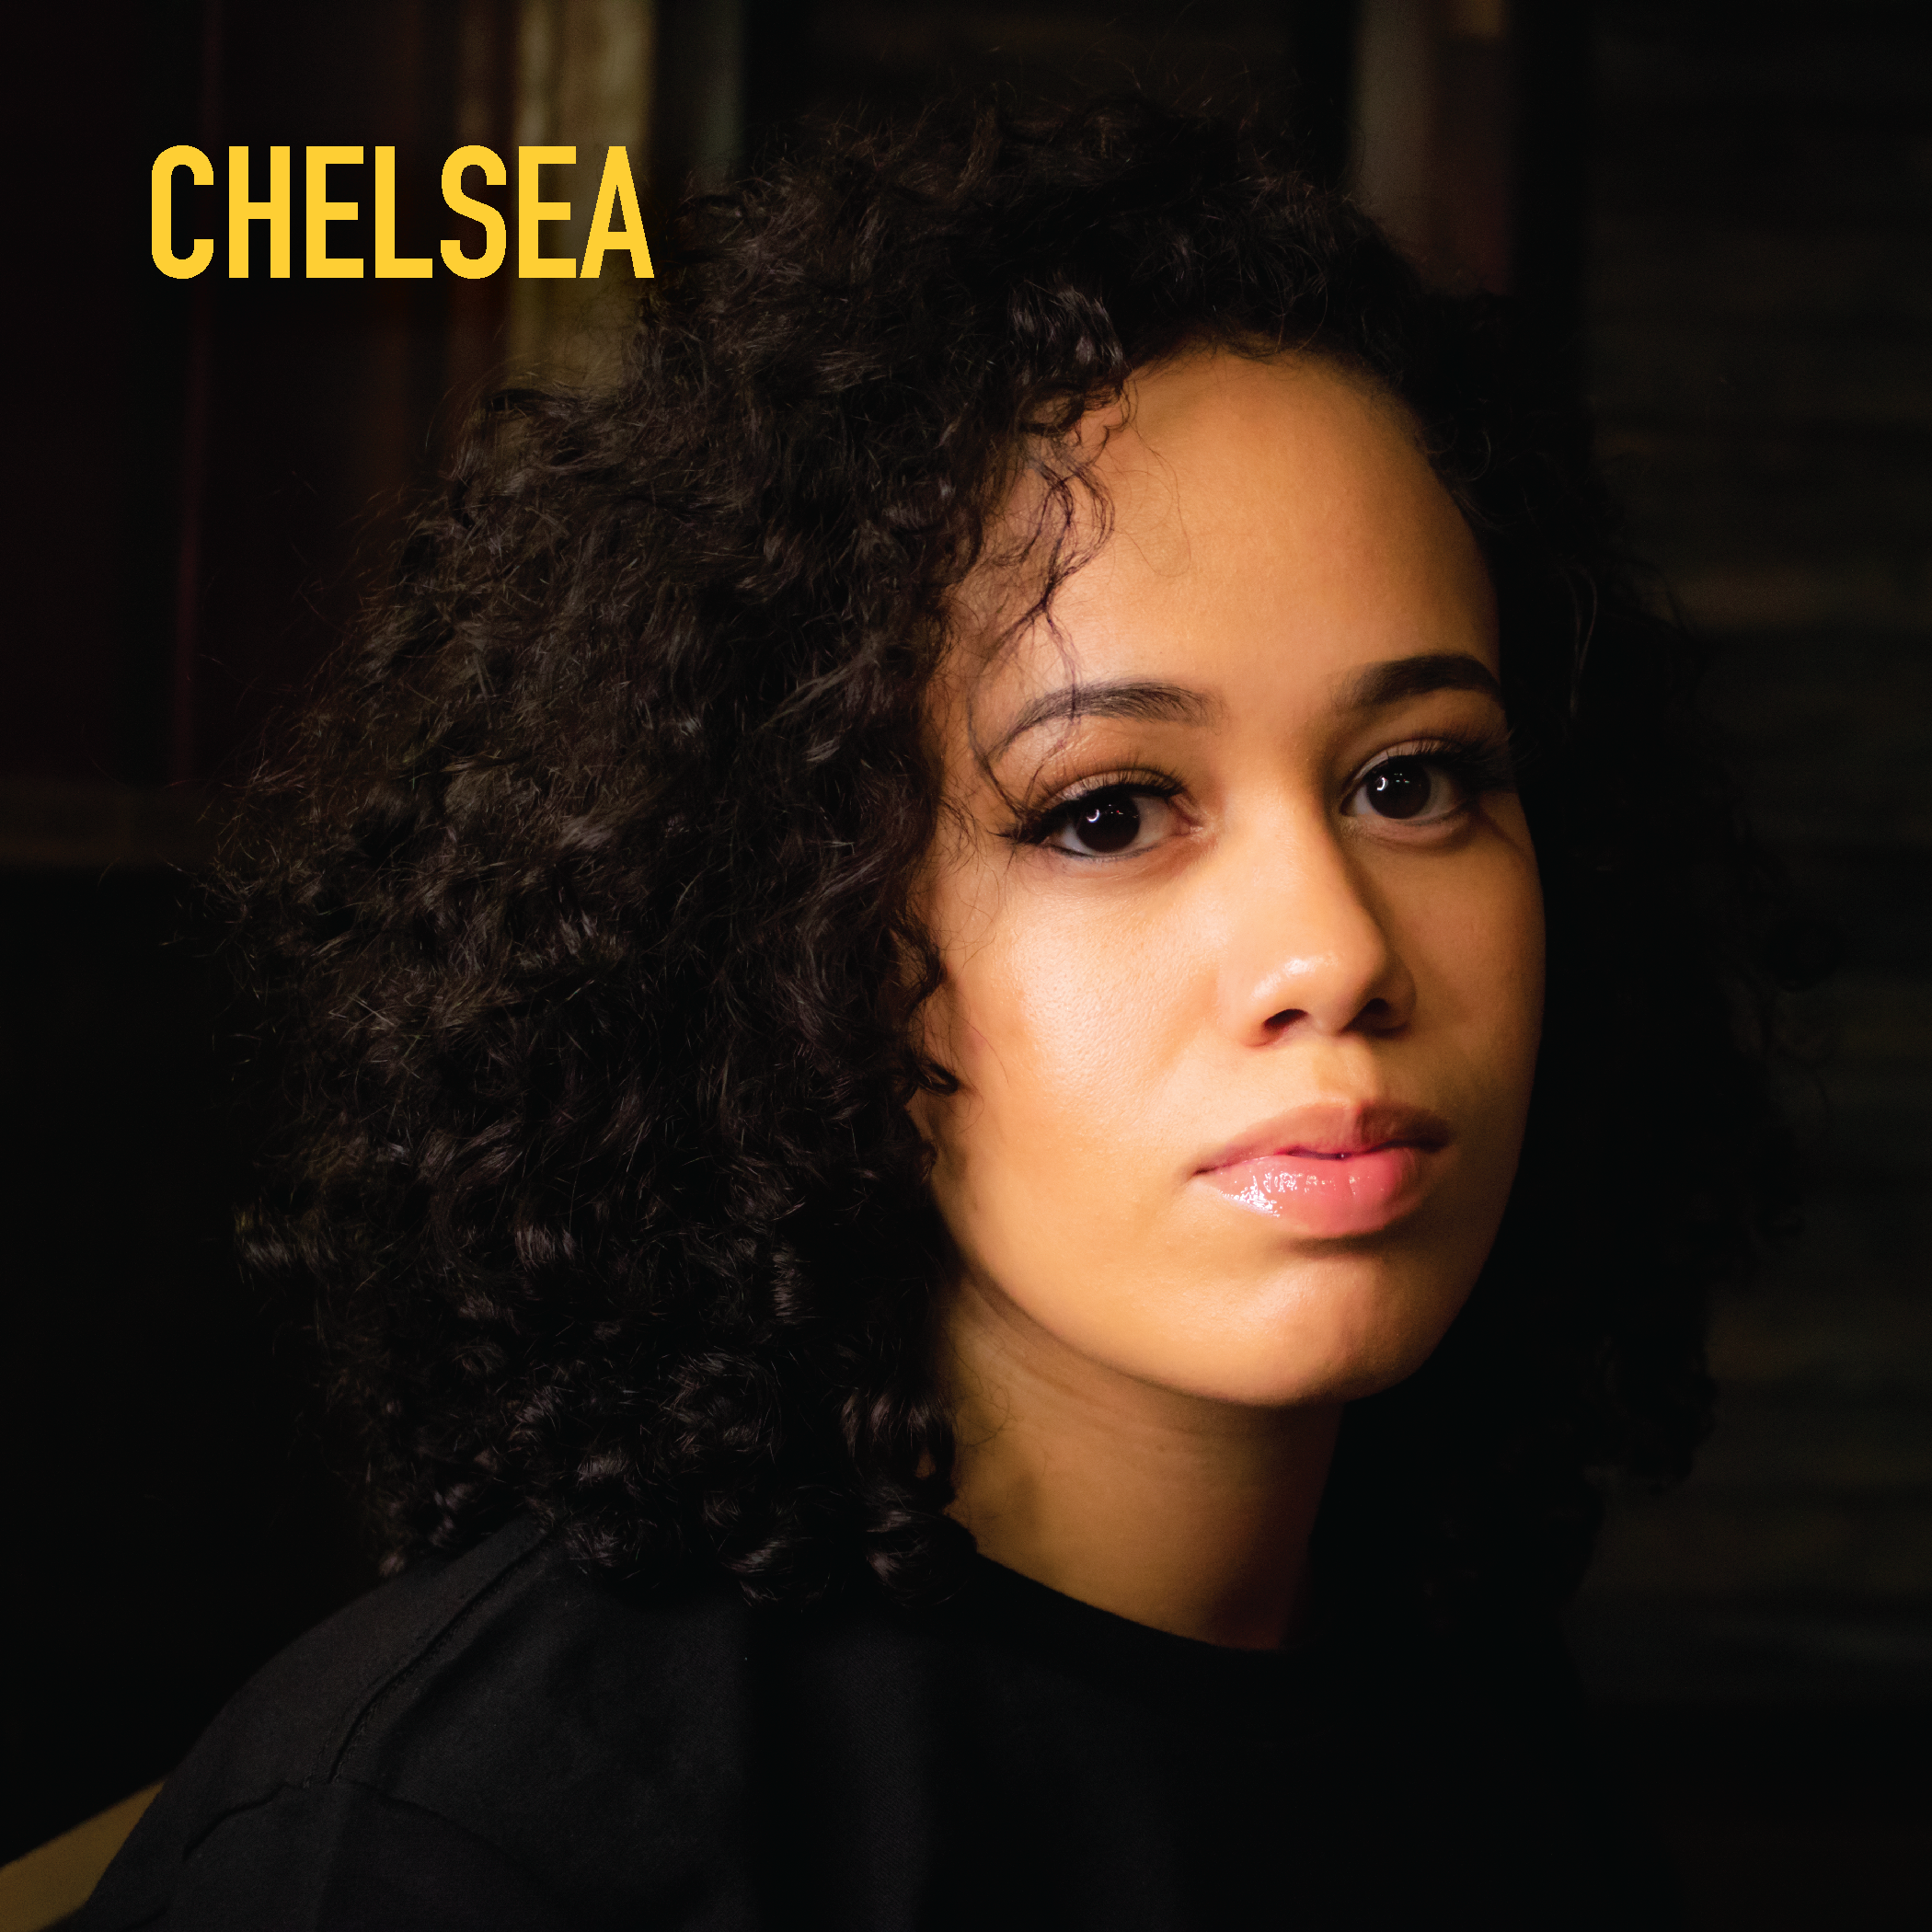 CHELSEA_profile-07.png